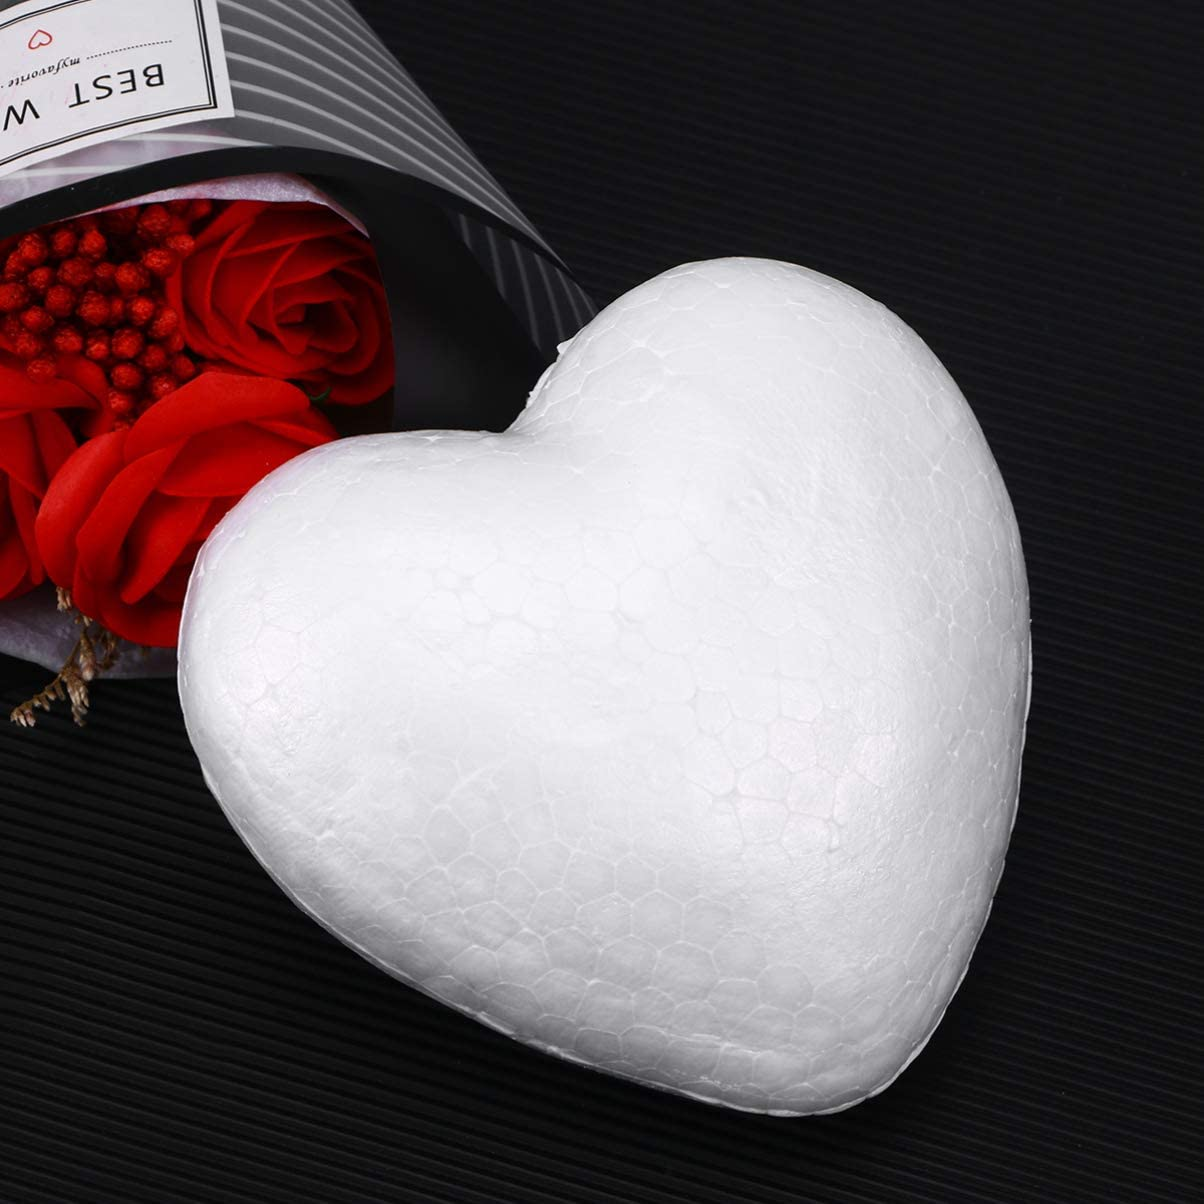 Toyvian Craft Foam Hearts Heart Shaped Styrofoam Polystyrene Foam Ball for DIY Arts Craft Ornaments Wedding Valentines Day Decorations 15cm